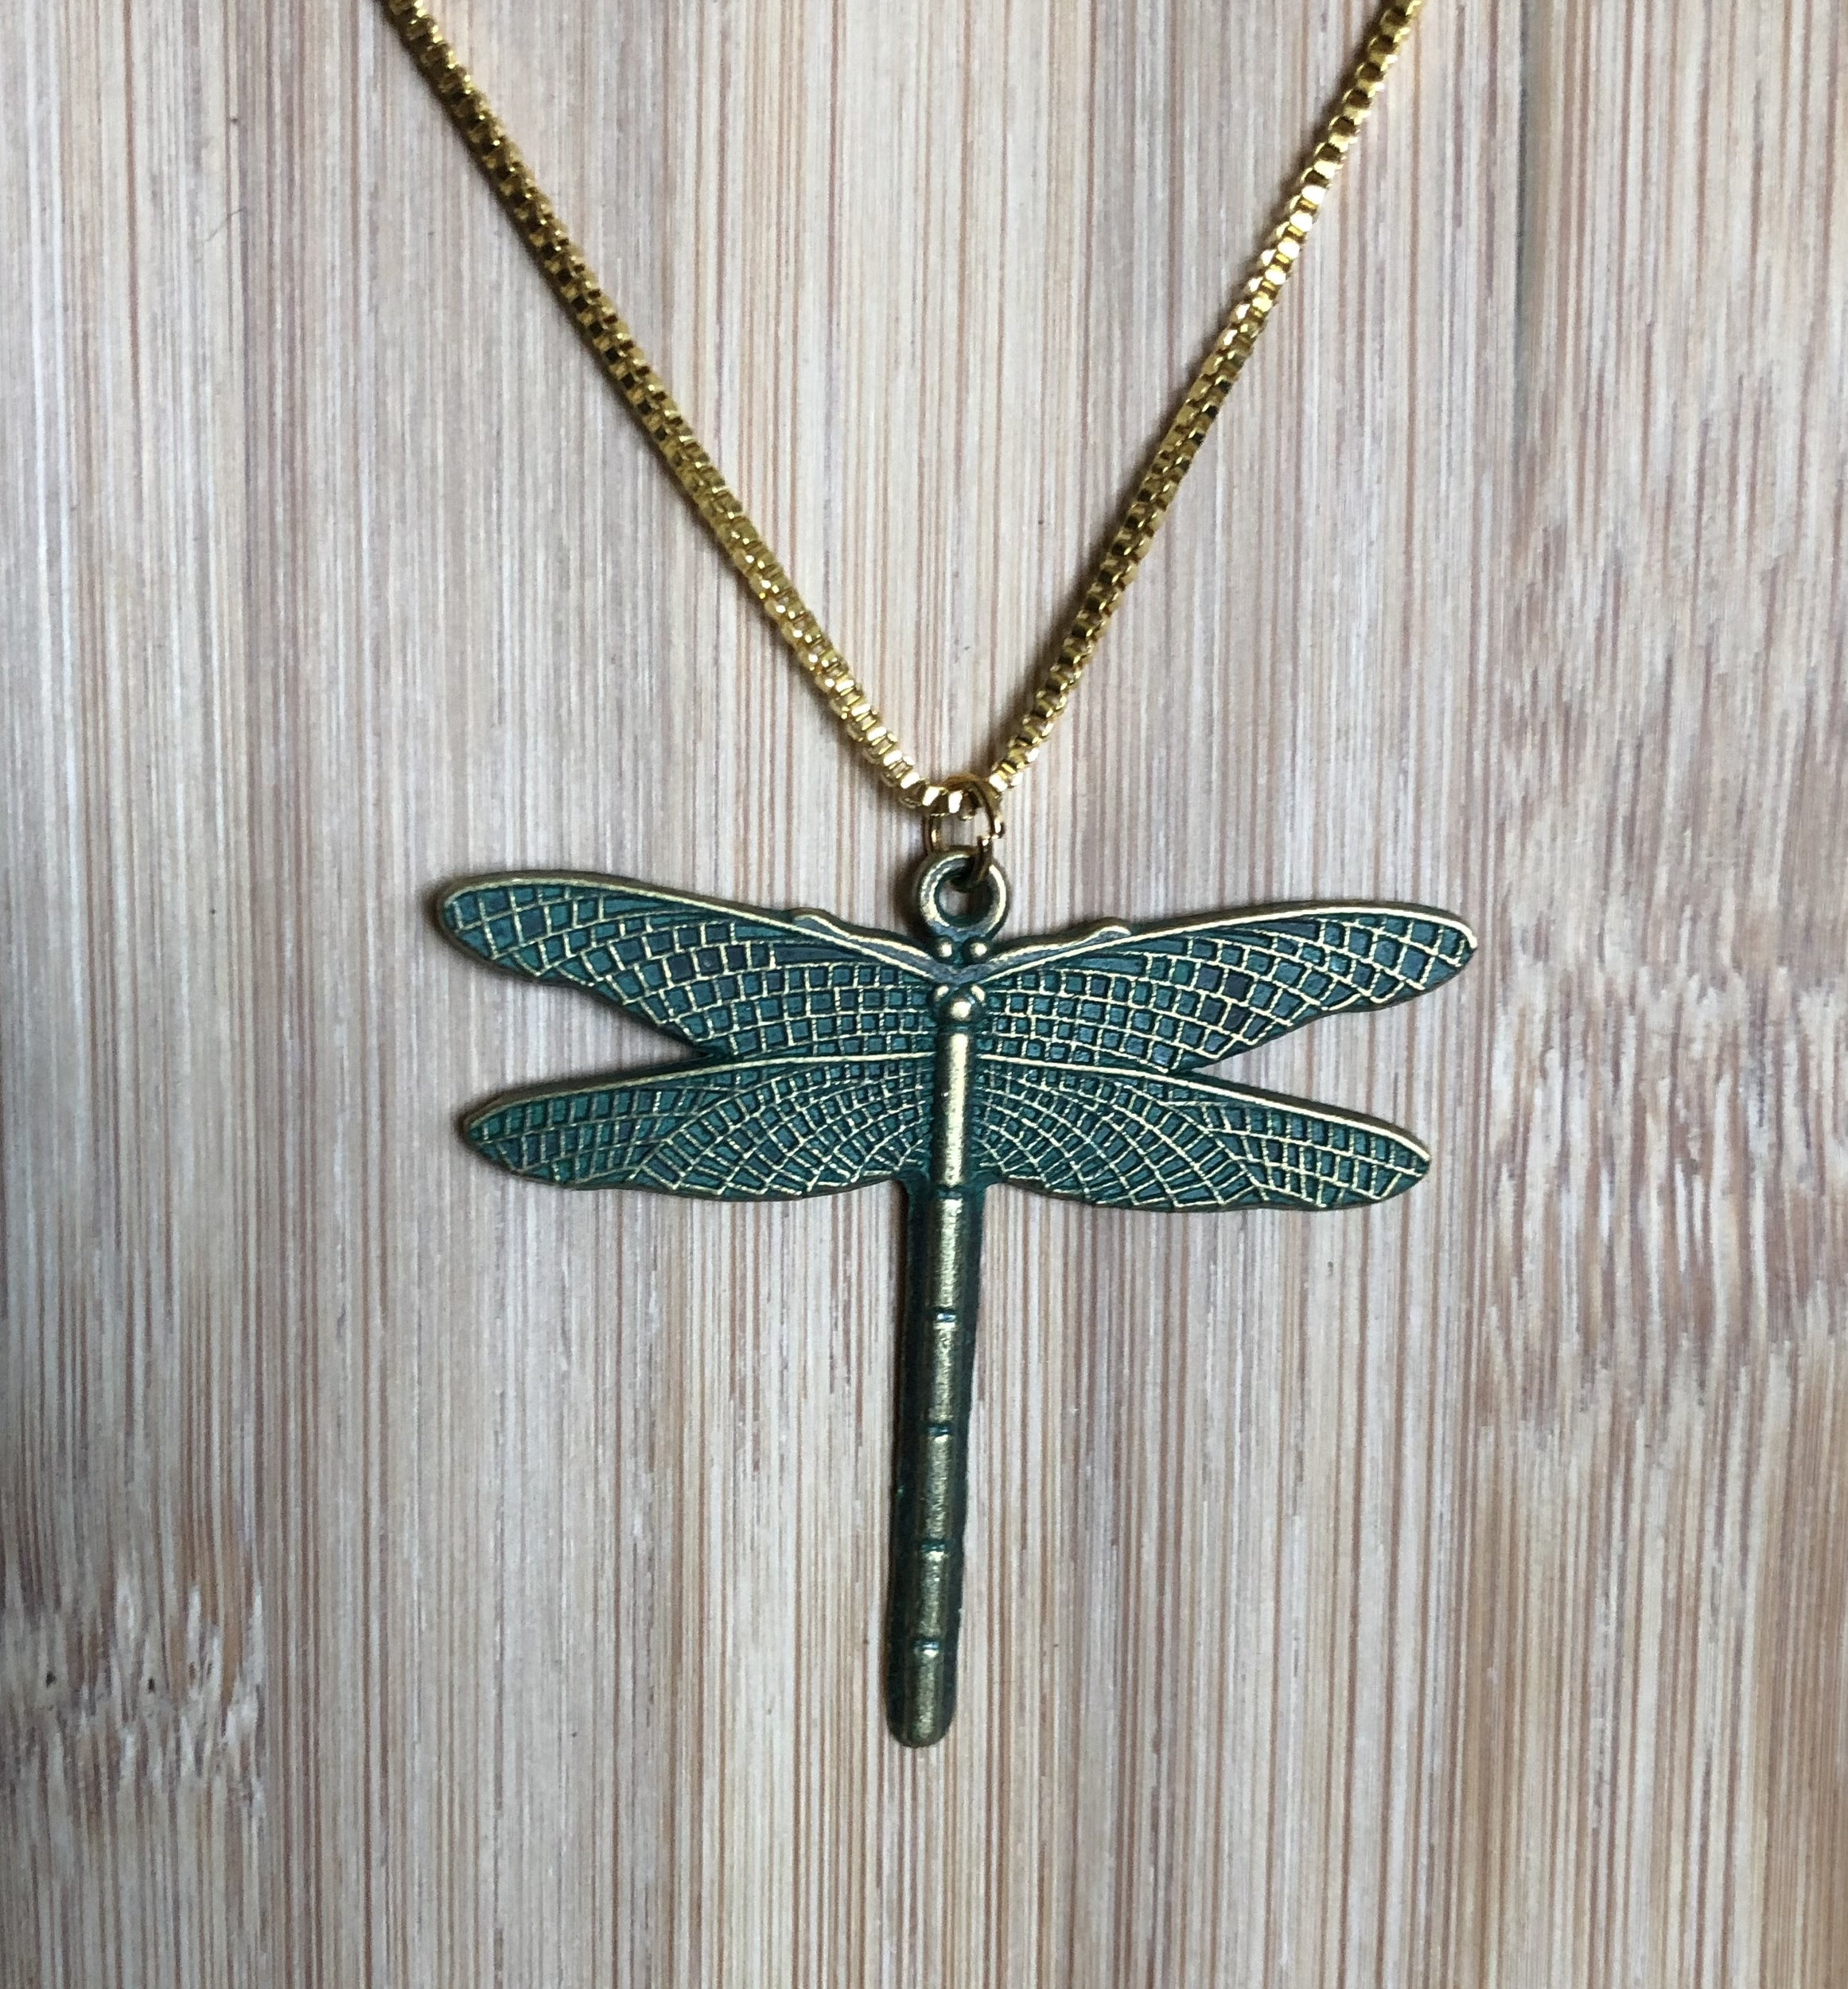 Collier laiton forme libellule - Angel shop